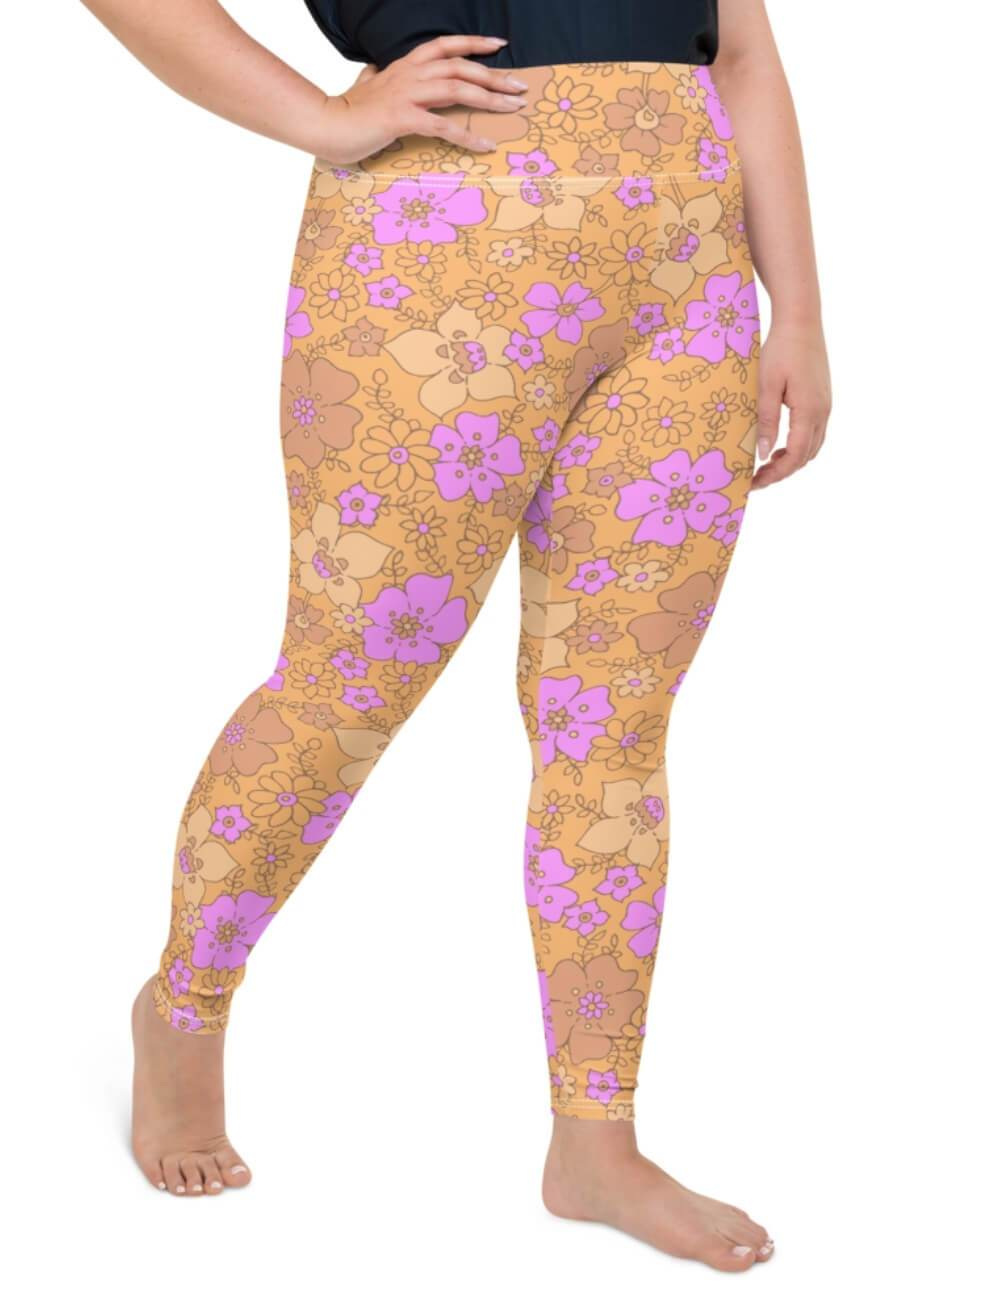 Plus Size Butter Cream Leggings - Boho Buys